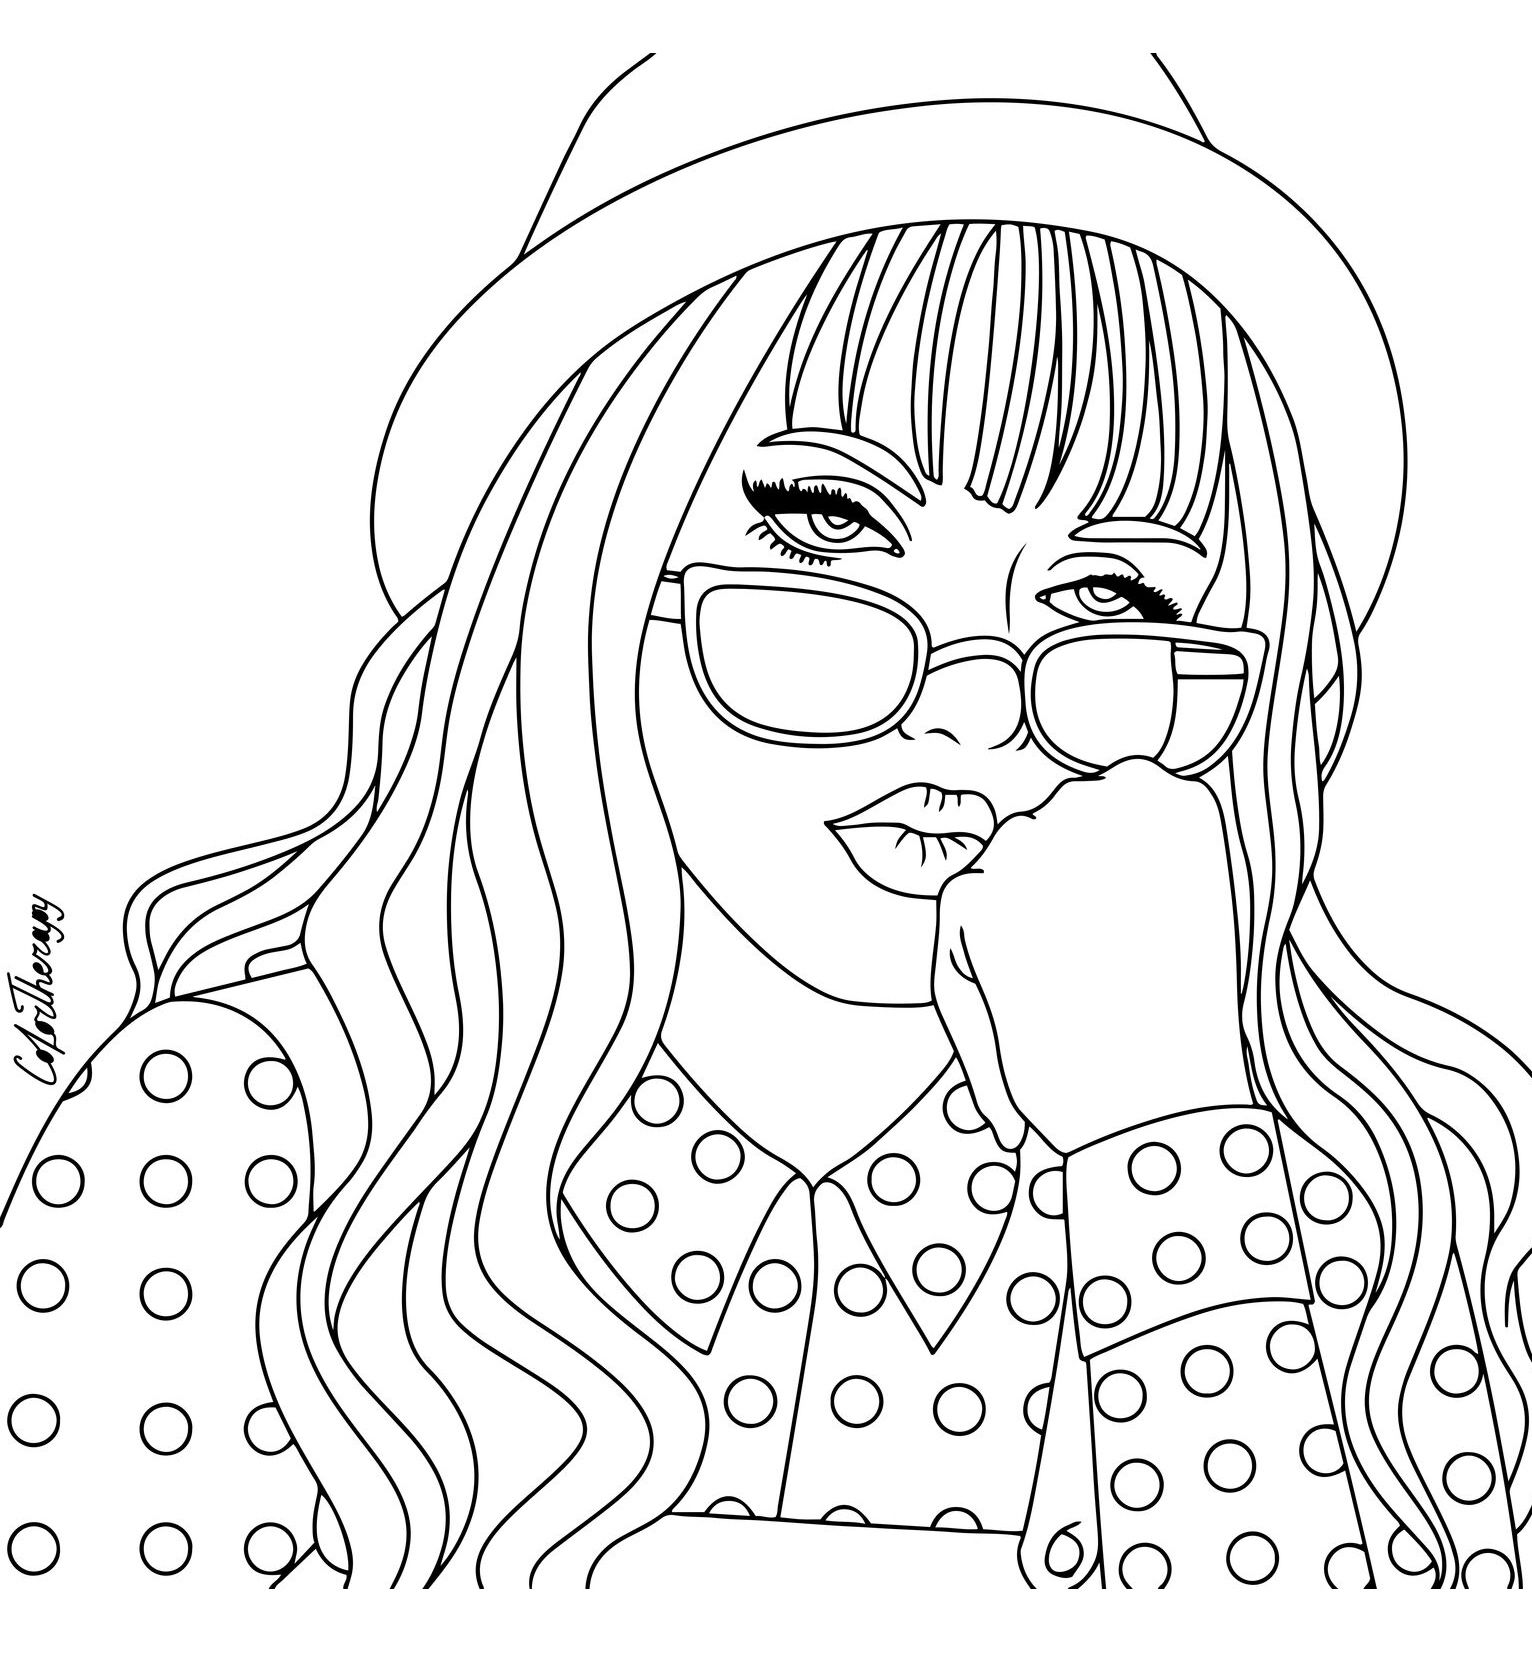 Coloring Page - Fashion gal | Cute coloring pages ...